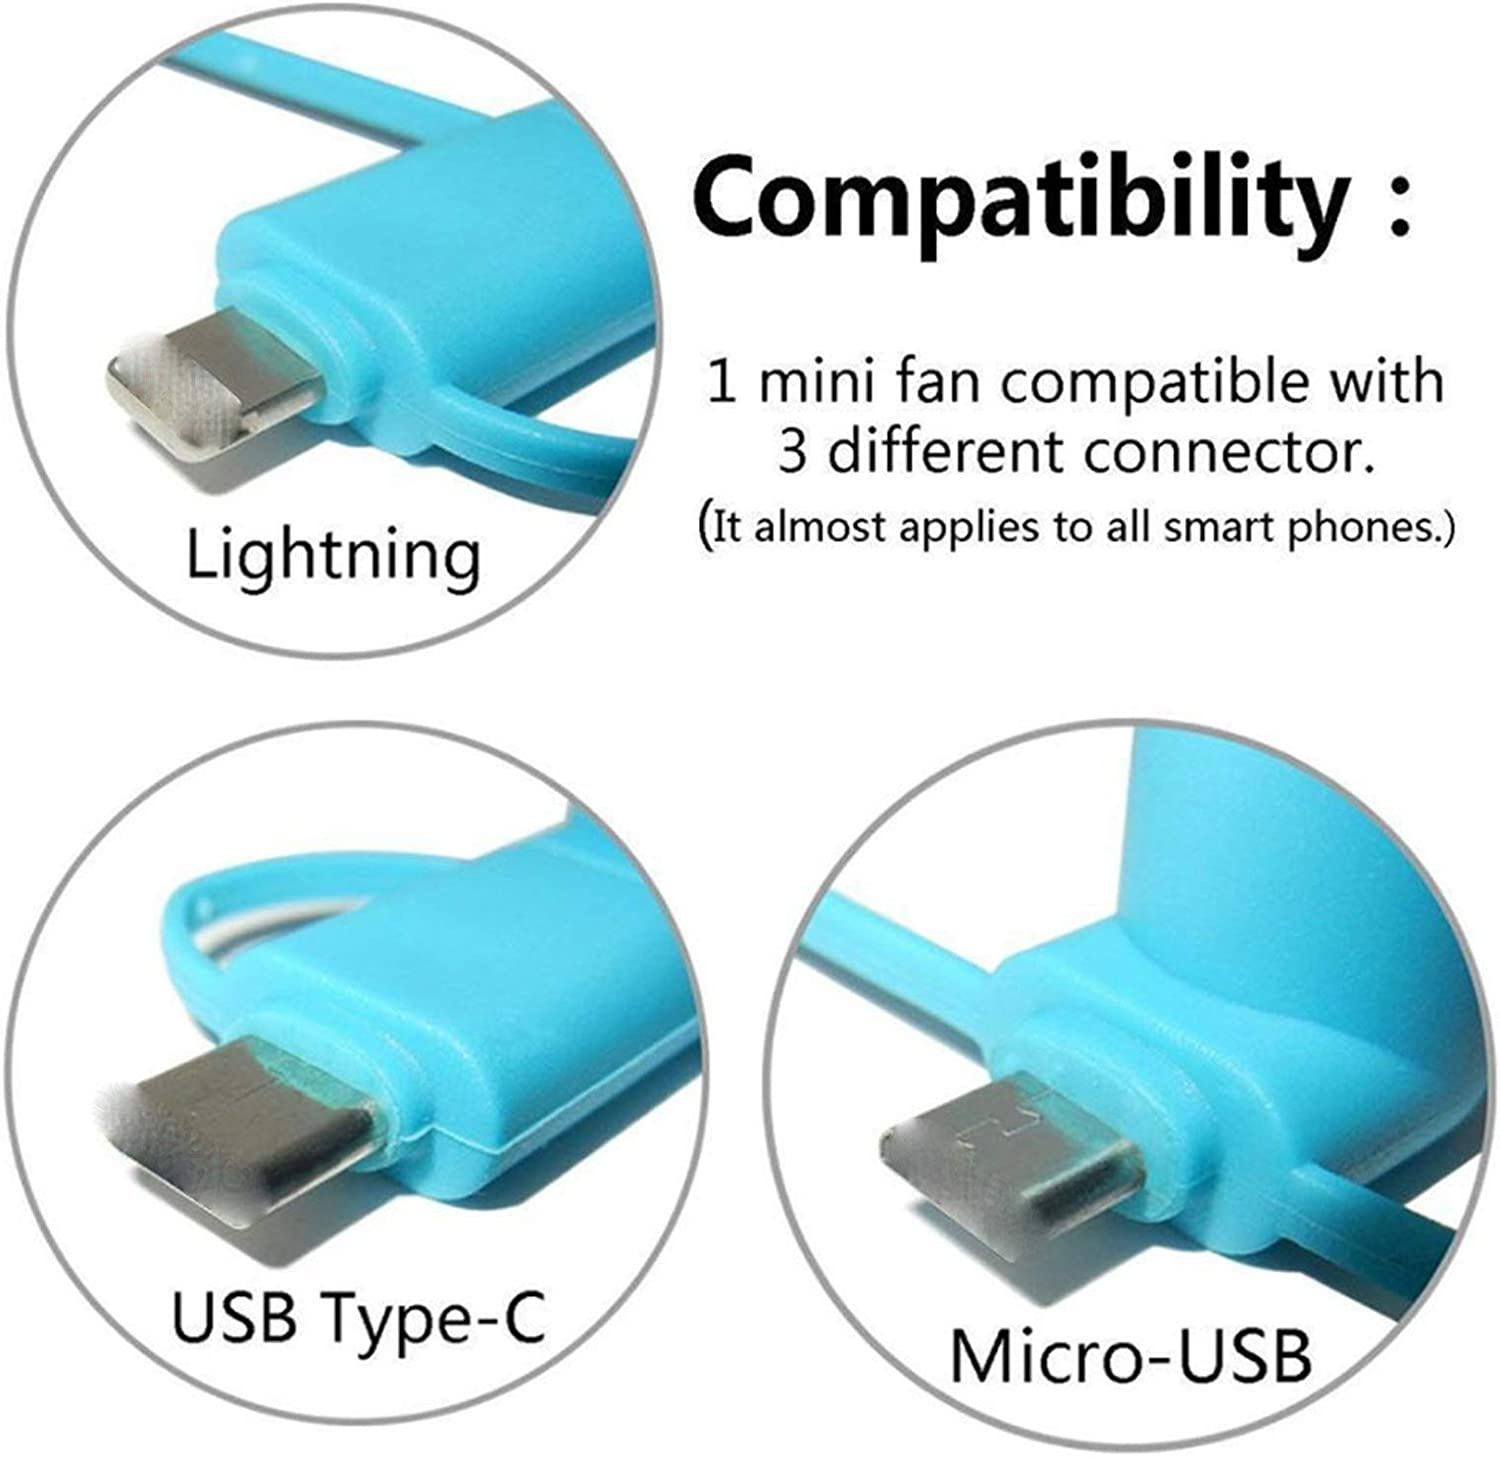 Android 3 in 1 Portable Mini USB Handheld Fan Mobile Phone Fans Cell Phone for iPhone//iPad Samsung S8 Xiaomi Mi5 Mi6,Black